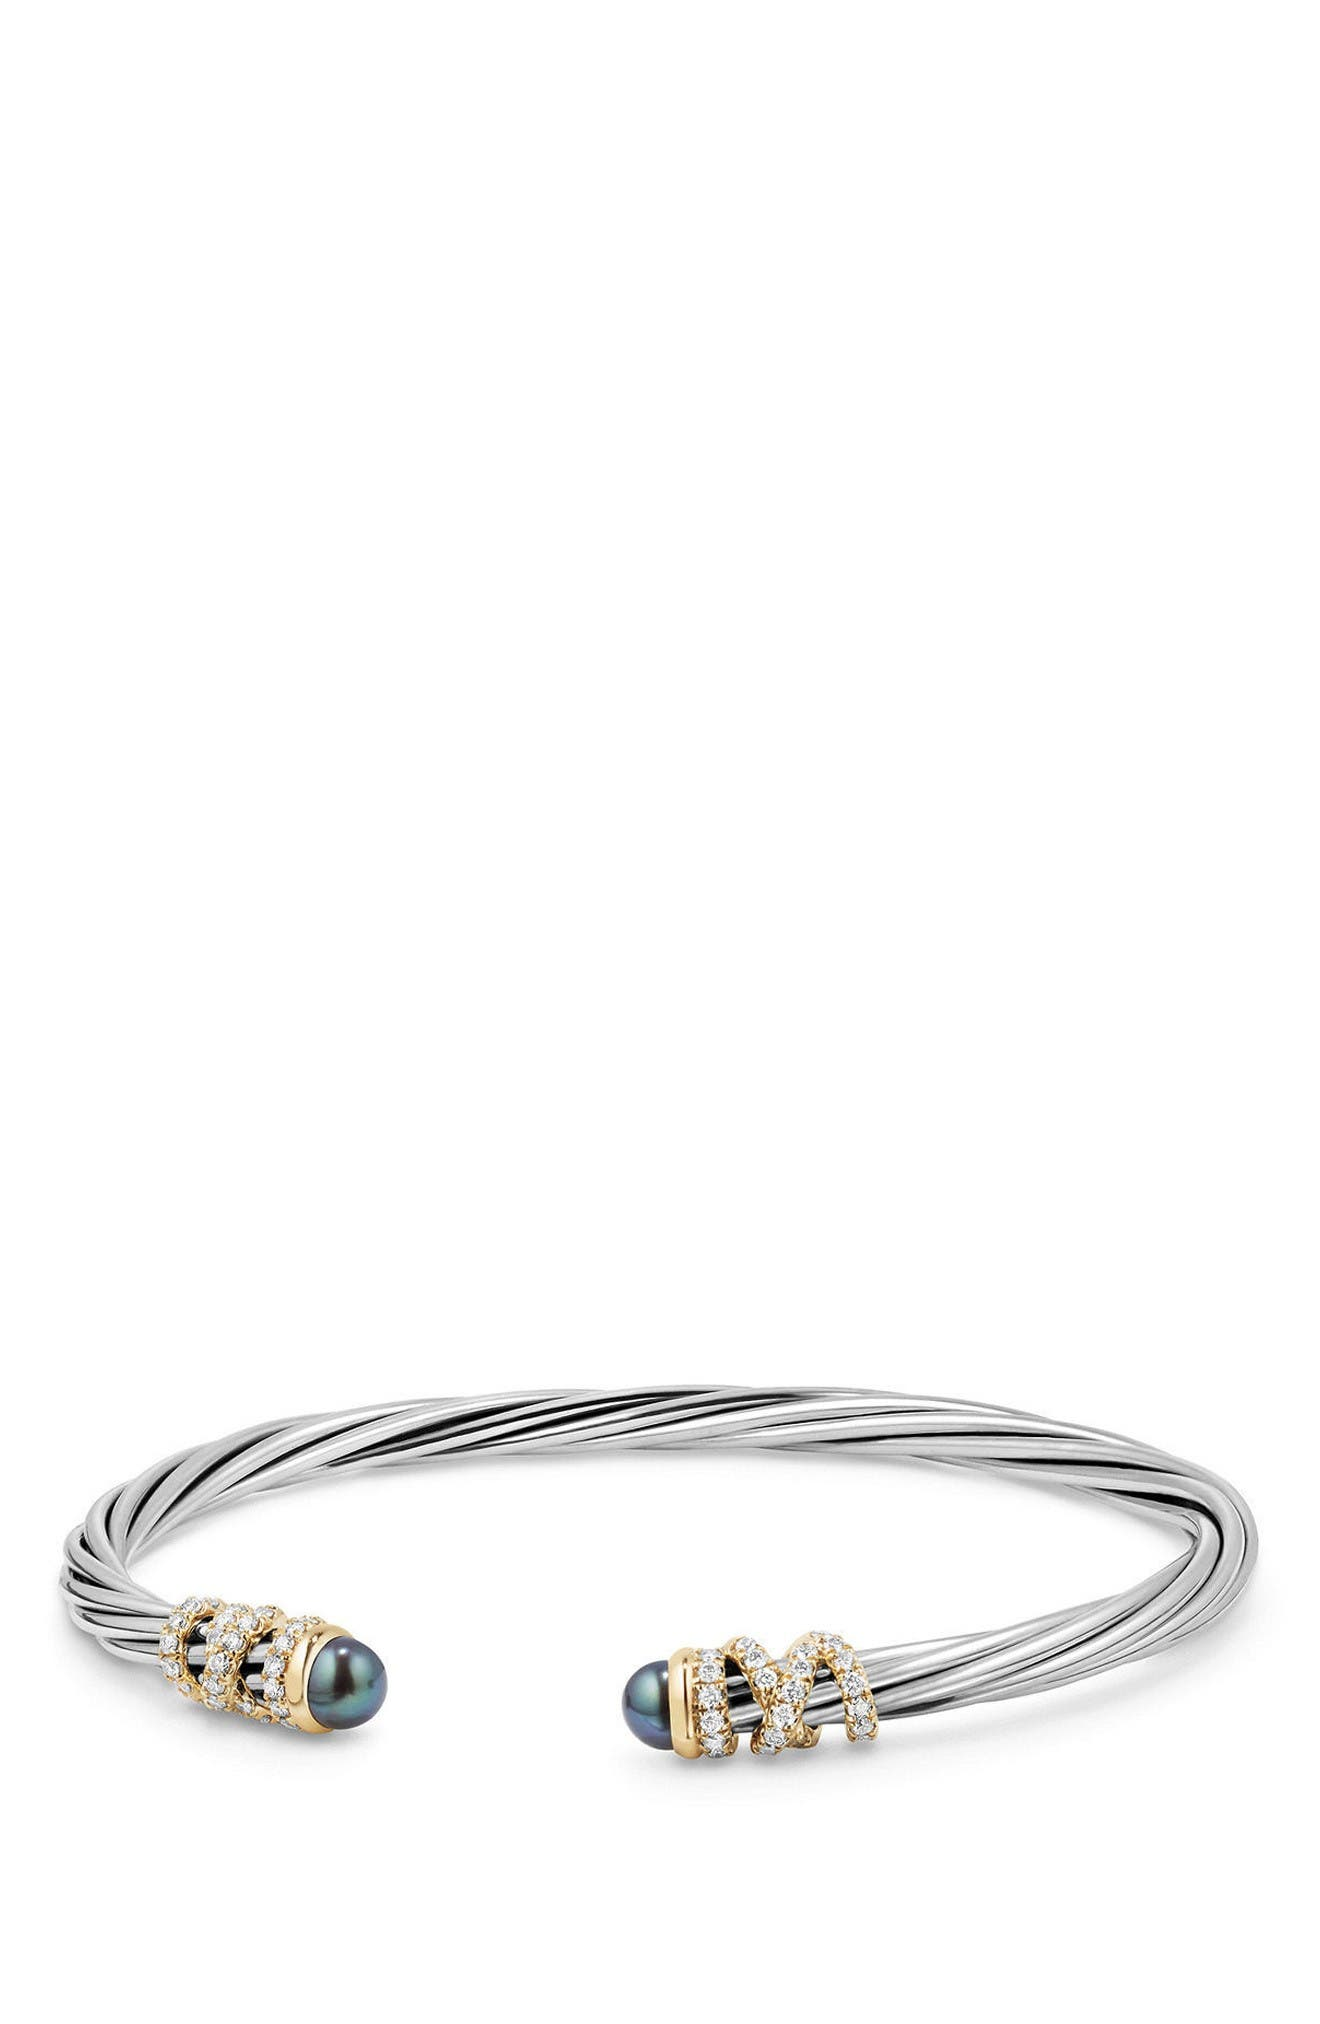 Alternate Image 1 Selected - David Yurman Helena End Station Bracelet with Pearls & Diamonds